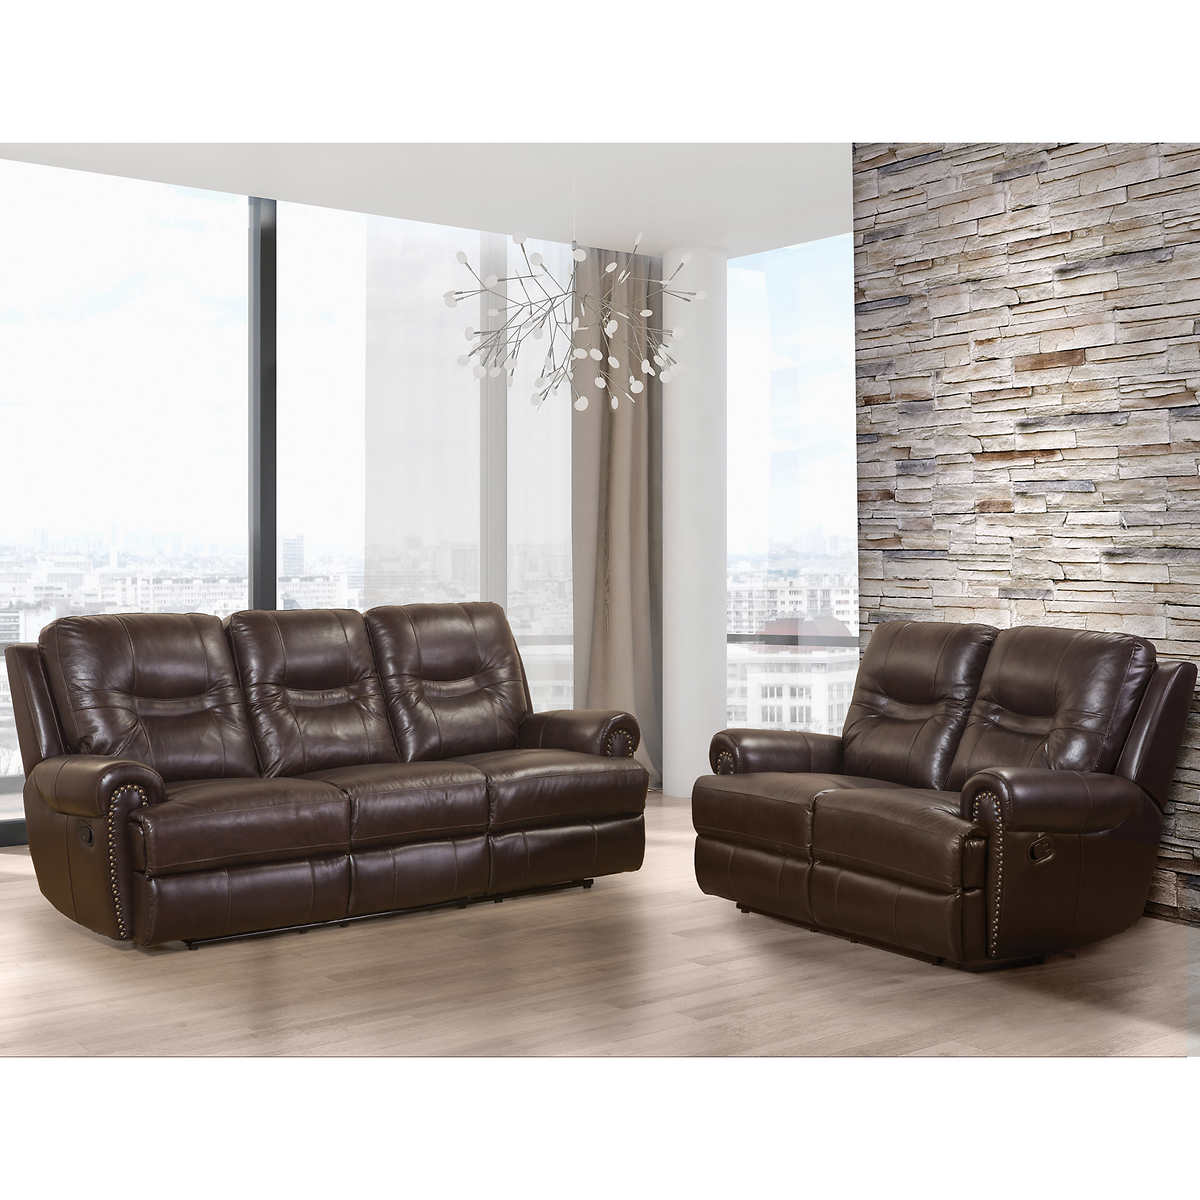 Brown Leather Reclining Sofa Canada Rs Gold Sofa